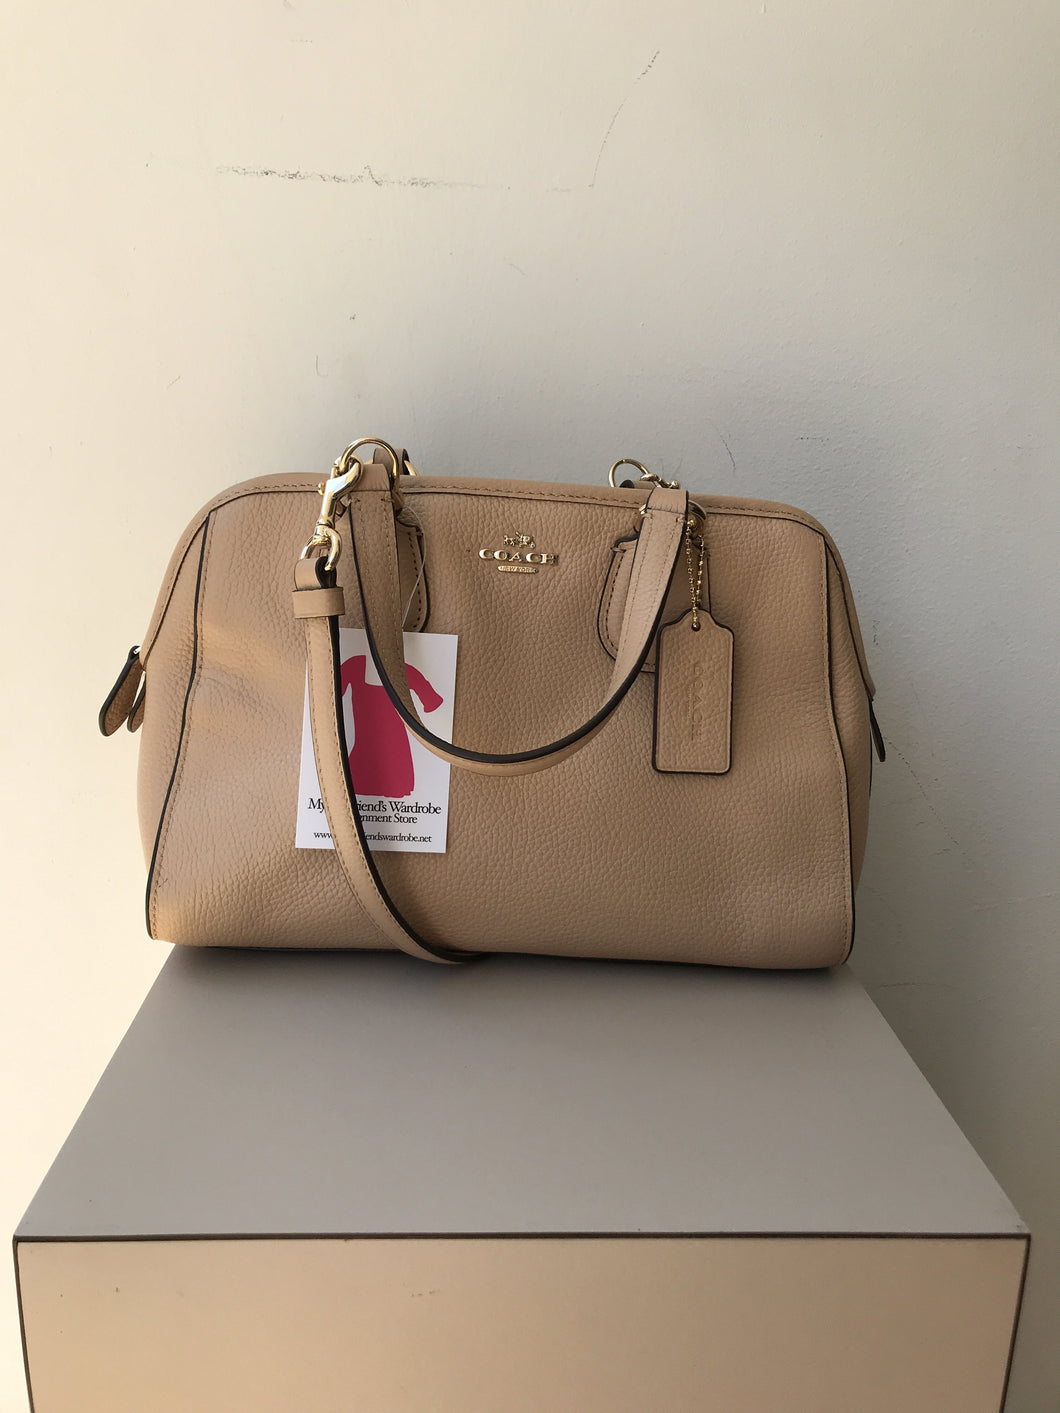 Coach light peach leather satchel 33735M - My Girlfriend's Wardrobe York Pa